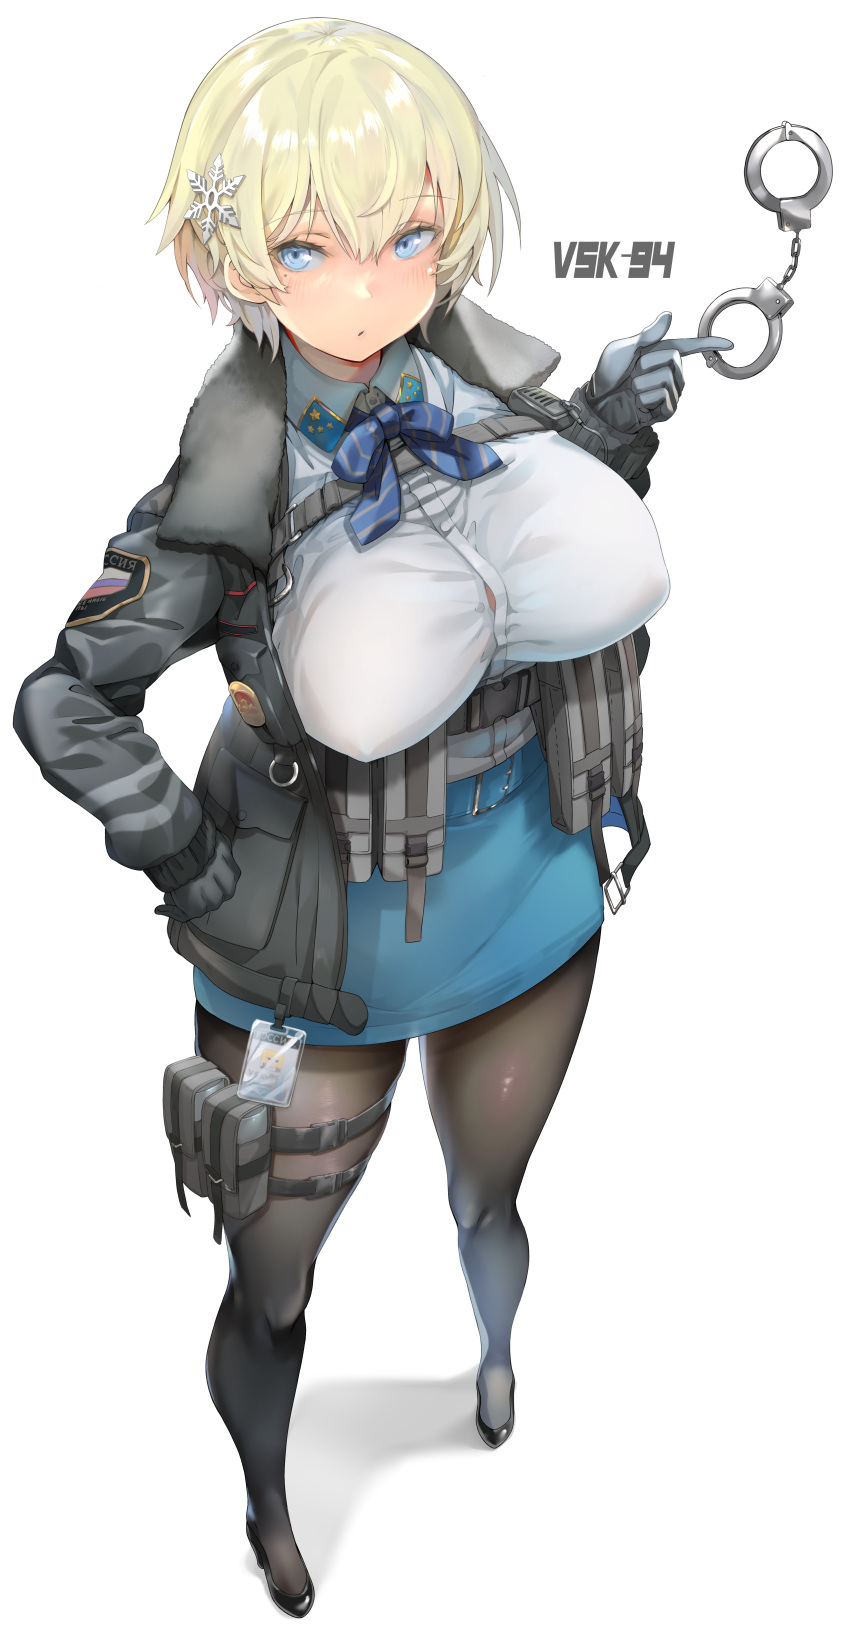 1girl :o absurdres bangs belt black_footwear black_gloves black_jacket black_legwear blonde_eyelashes blonde_hair blue_belt blue_eyes blue_neckwear blue_skirt bow bowtie breasts button_gap character_name collared_shirt commentary_request covered_nipples cuffs eyebrows_visible_through_hair full_body girls_frontline gloves hair_between_eyes hair_ornament hand_on_hip handcuff_dangle handcuffs high_heels highres id_card jacket large_breasts light_blush load_bearing_vest long_sleeves looking_at_viewer magazine_(weapon) mole mole_under_eye pantyhose pouch russian_flag shadow sharekoube shirt shirt_tucked_in short_hair sidelocks simple_background skirt snap-fit_buckle snowflake_hair_ornament solo standing taut_clothes taut_skirt thigh_pouch tsurime vsk-94_(girls_frontline) walkie-talkie white_background white_shirt